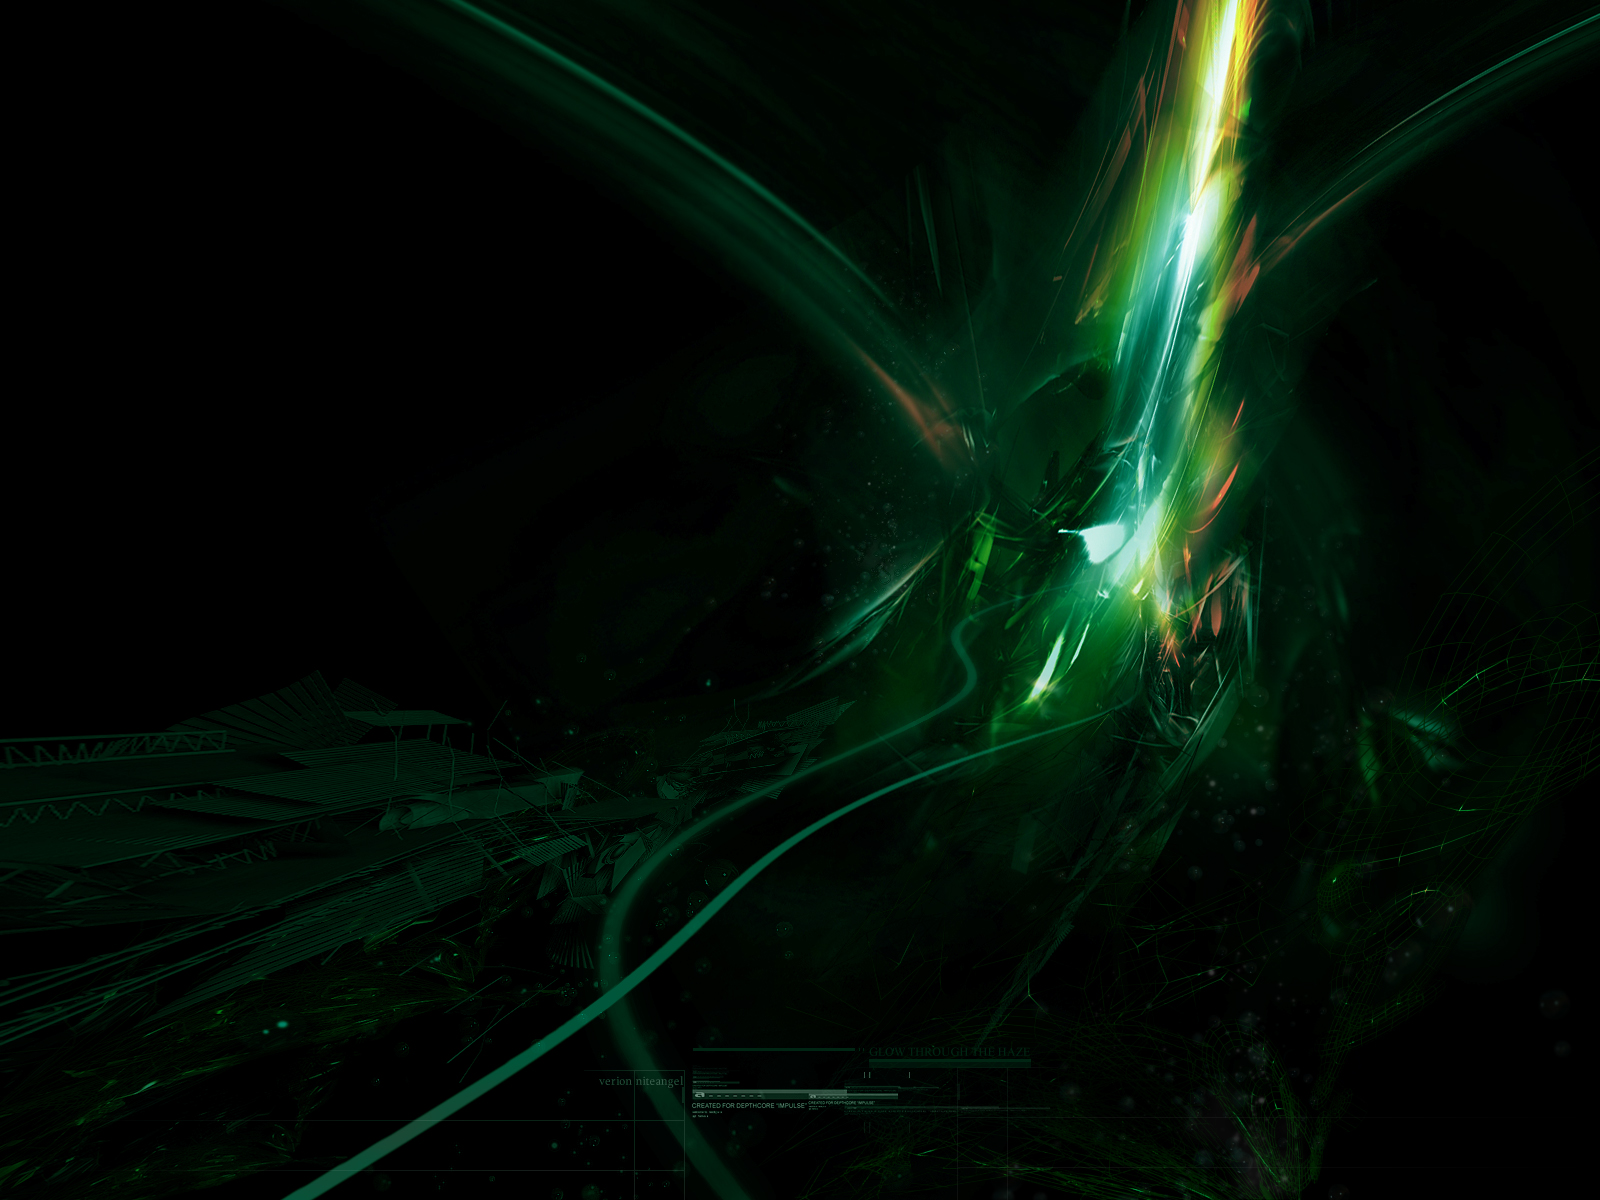 Dark Green Abstract Backgrounds Image Gallery on postimgscom 1600x1200